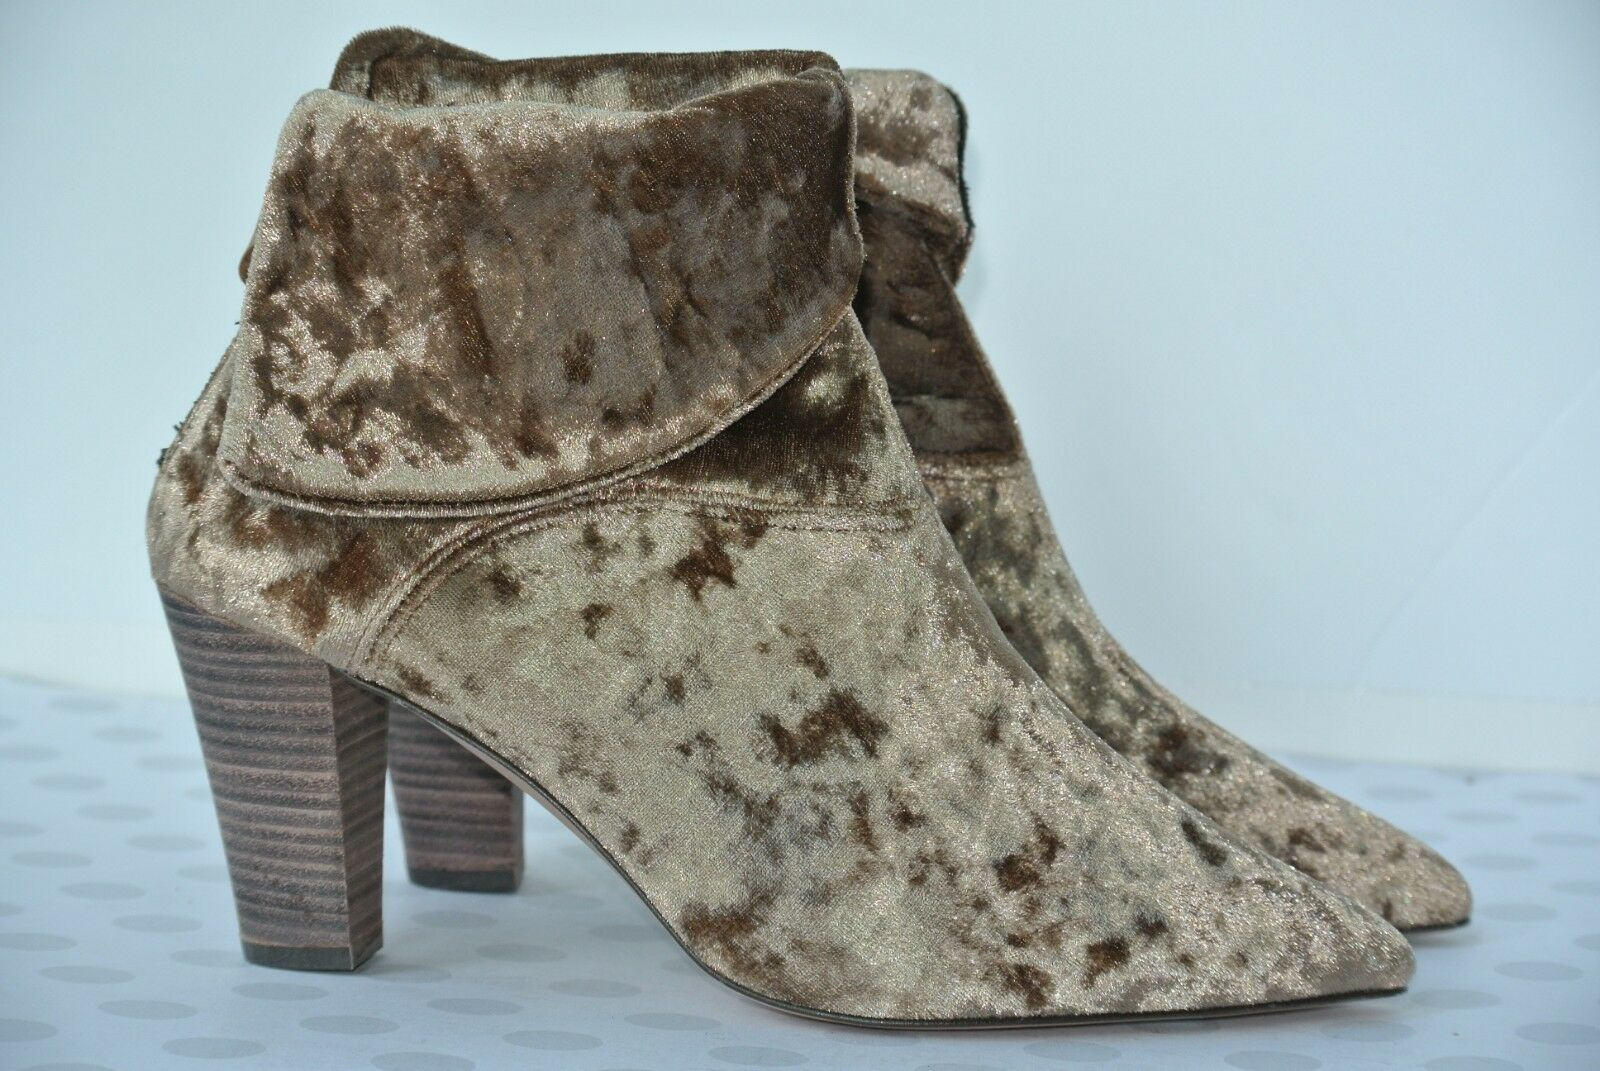 NEW Free People Damenschuhe 39 / 8.5 Braun Sand Crushed Velvet Cuff Ankle Stiefel $198